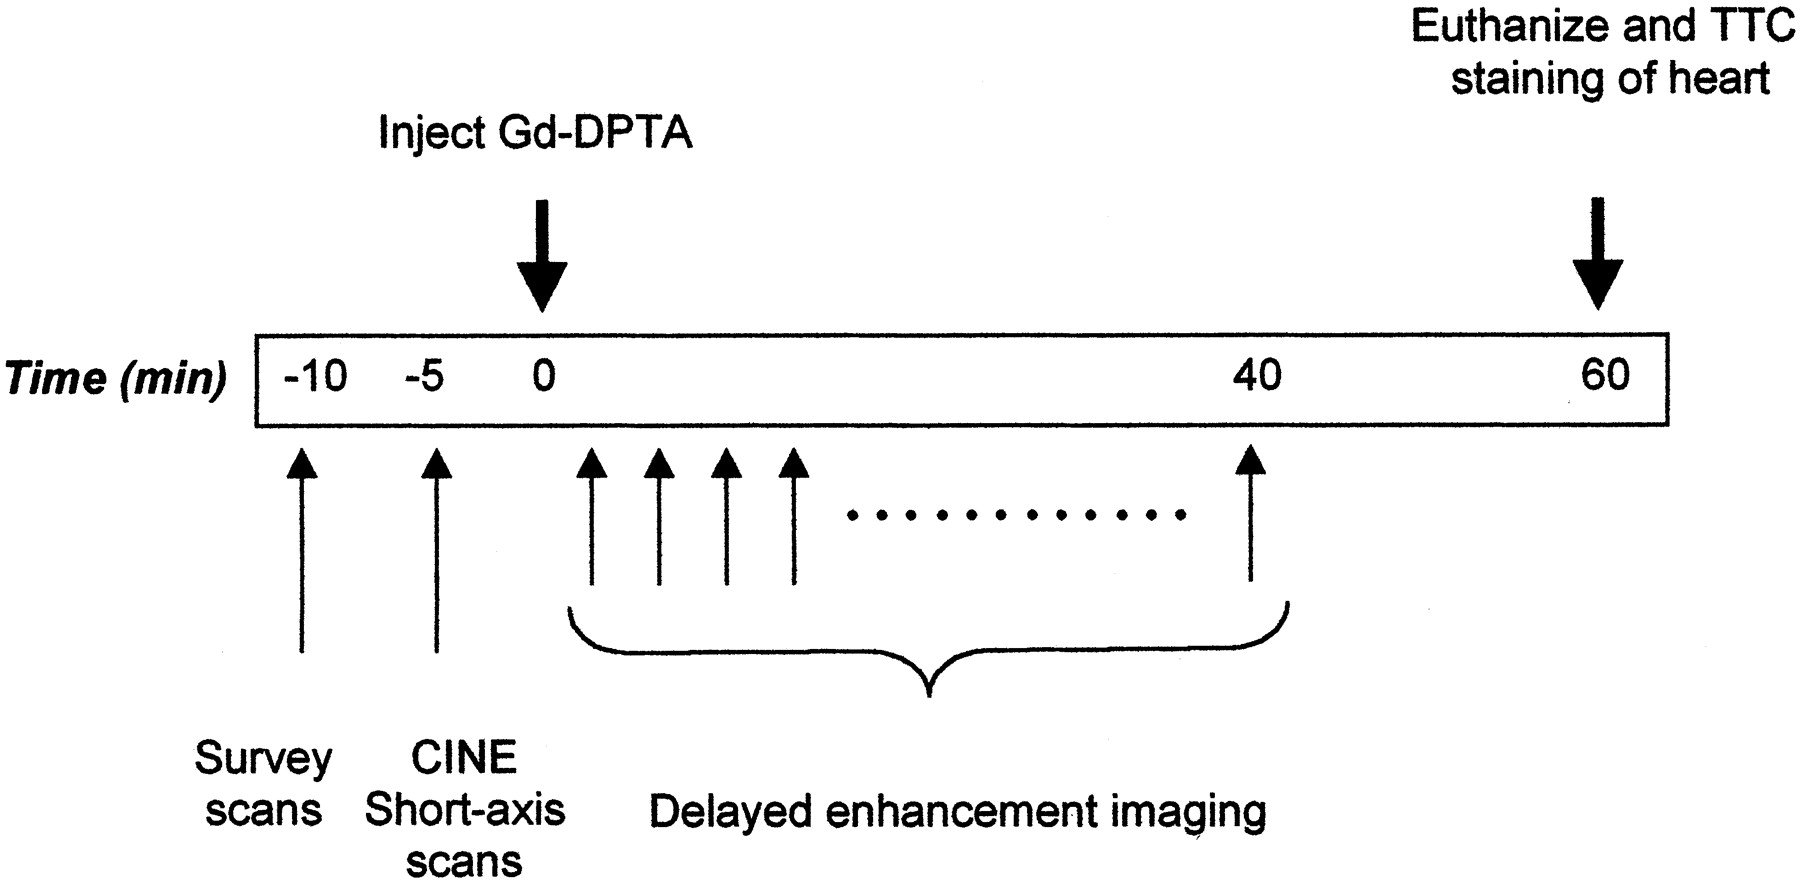 Imaging Time After Gd-DTPA Injection Is Critical in Using ...